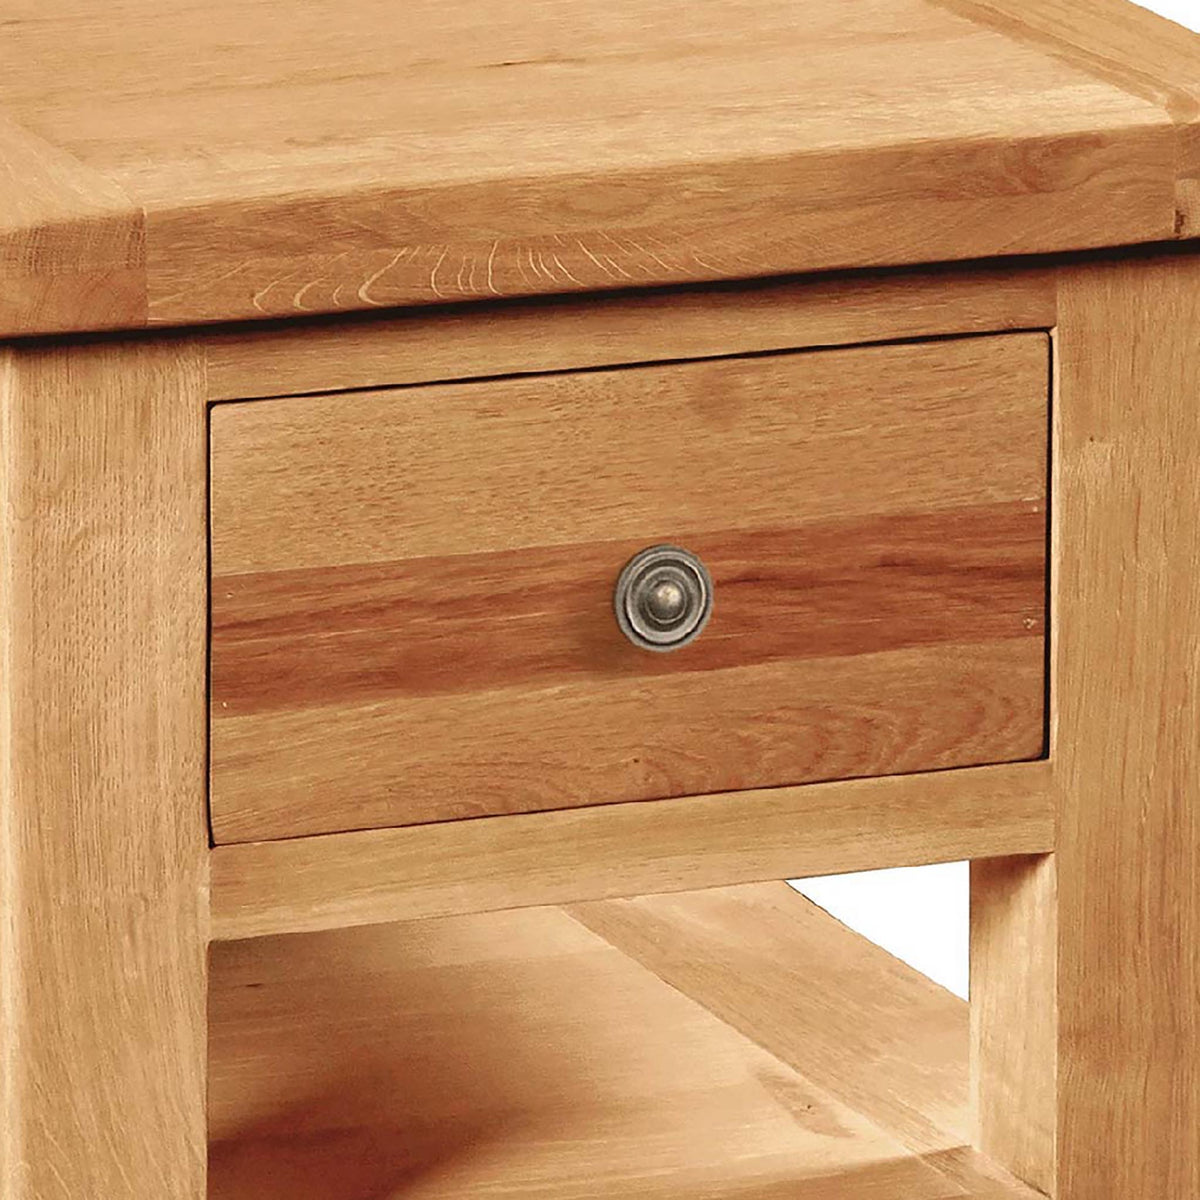 Sidmouth Lamp Table With Drawer - Close Up of Drawer Front